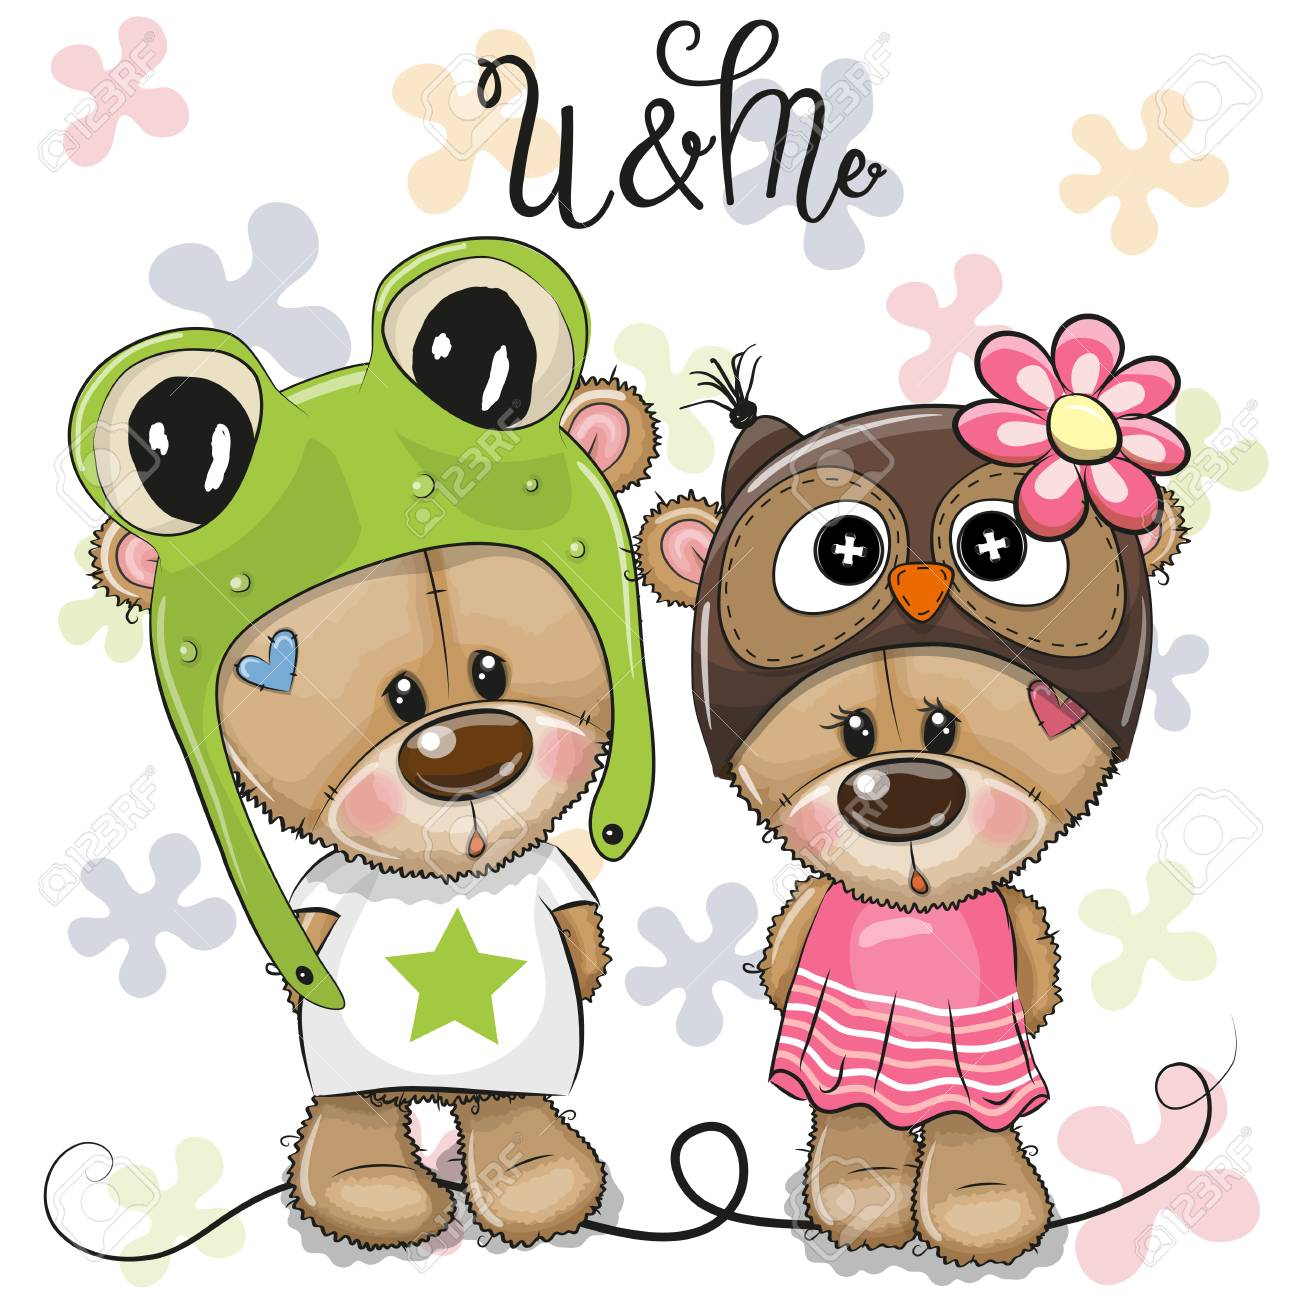 Greeting card Cartoon Bears boy and girl on a flowers background - 127054506